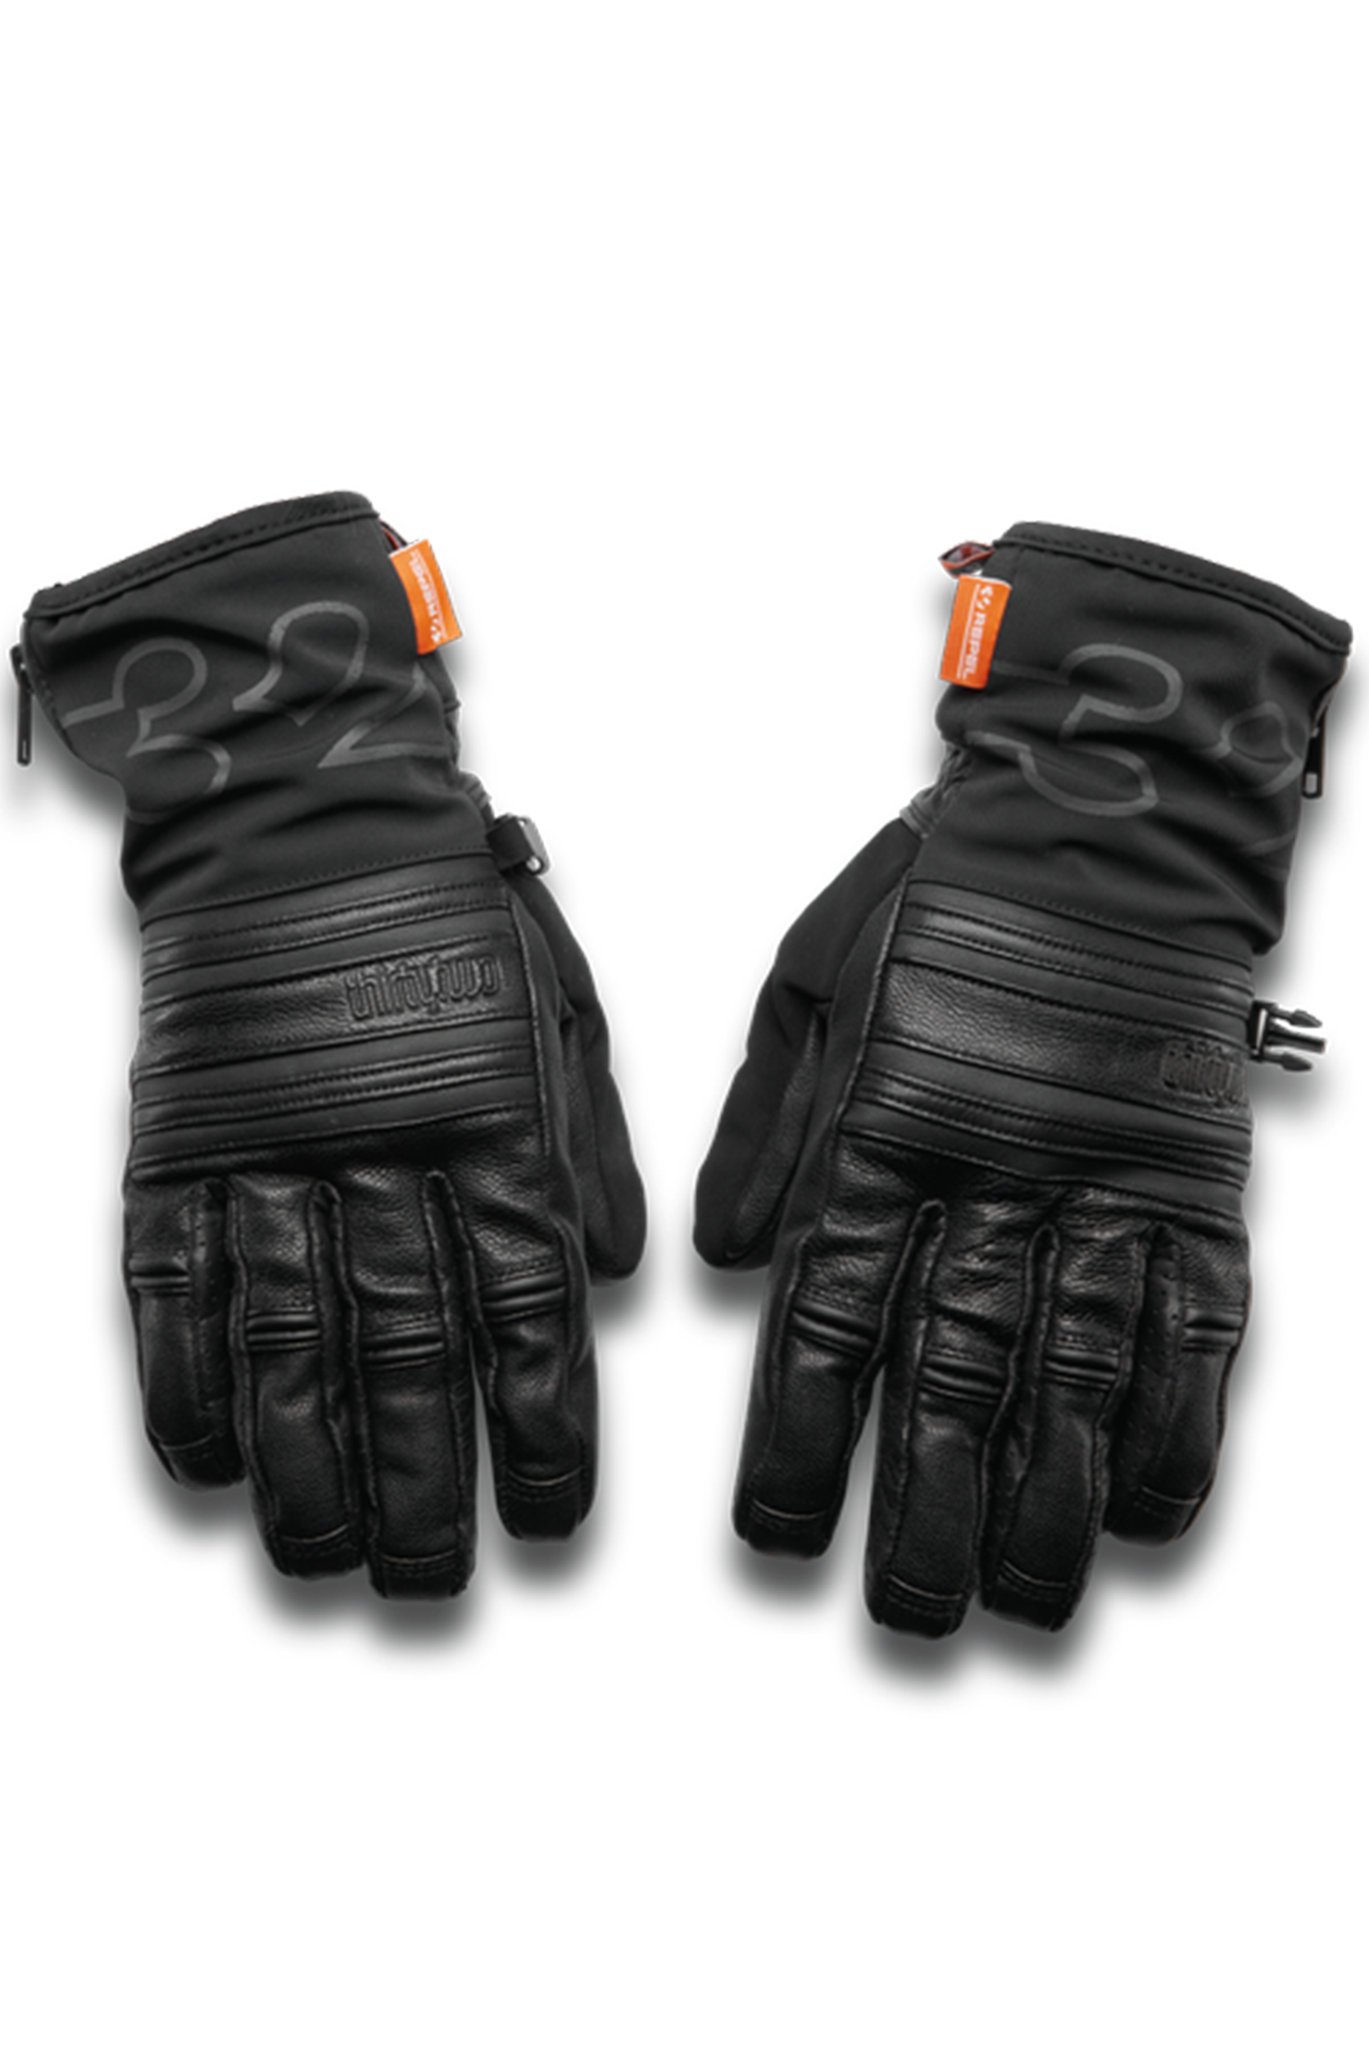 THIRTYTWO - THROTTLE GLOVES - BLACK